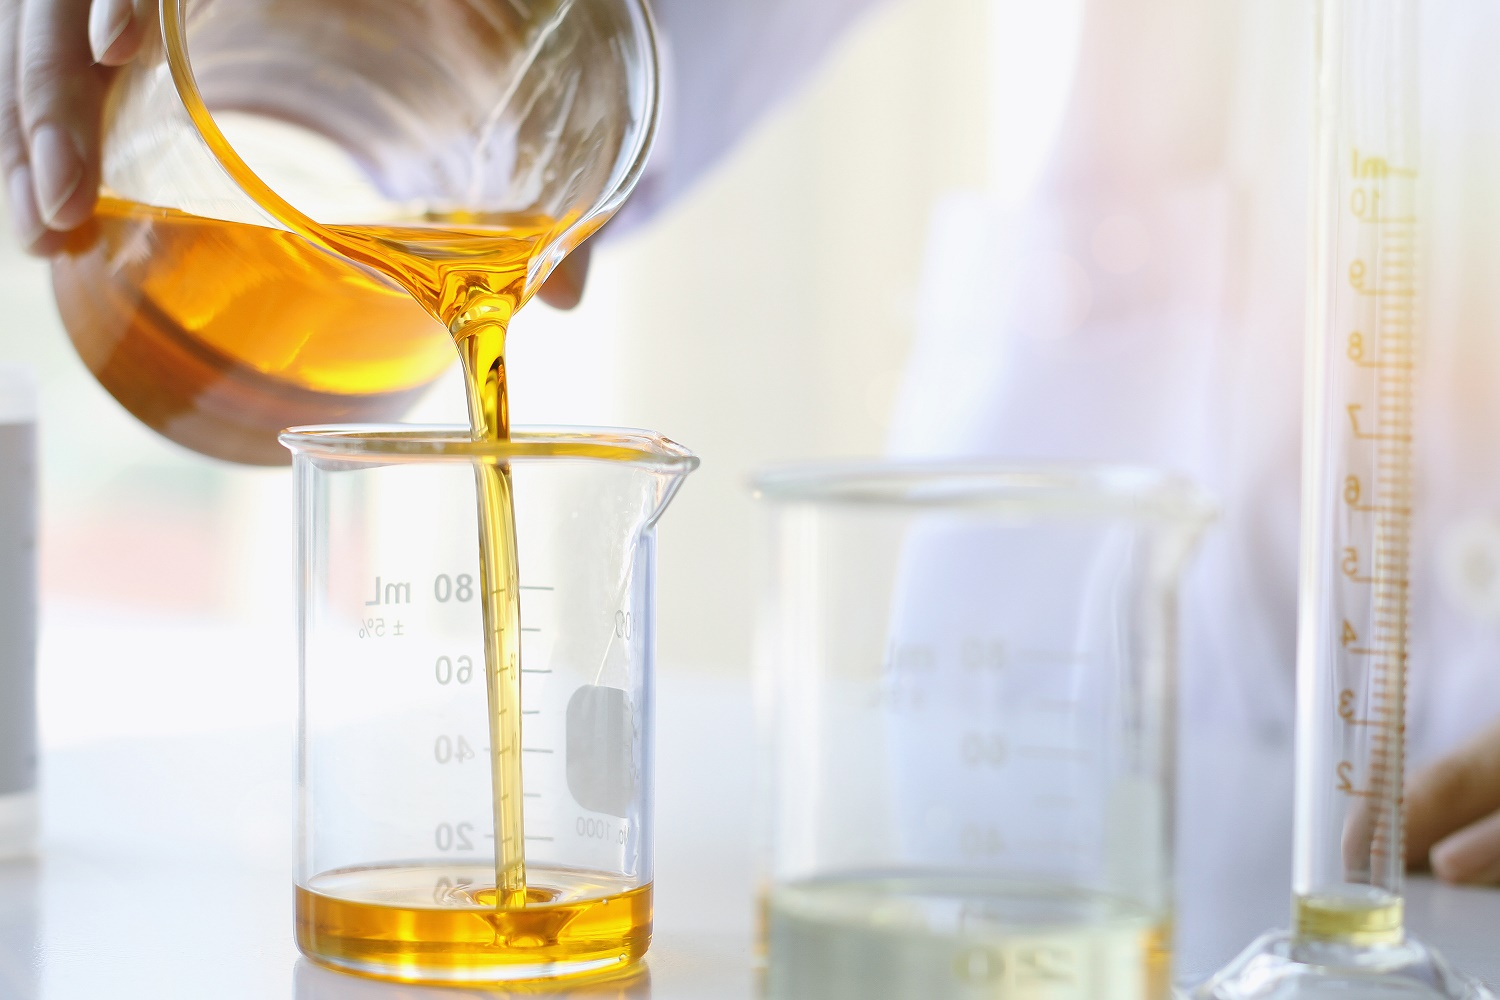 Oil pouring, Equipment and science experiments, Formulating the